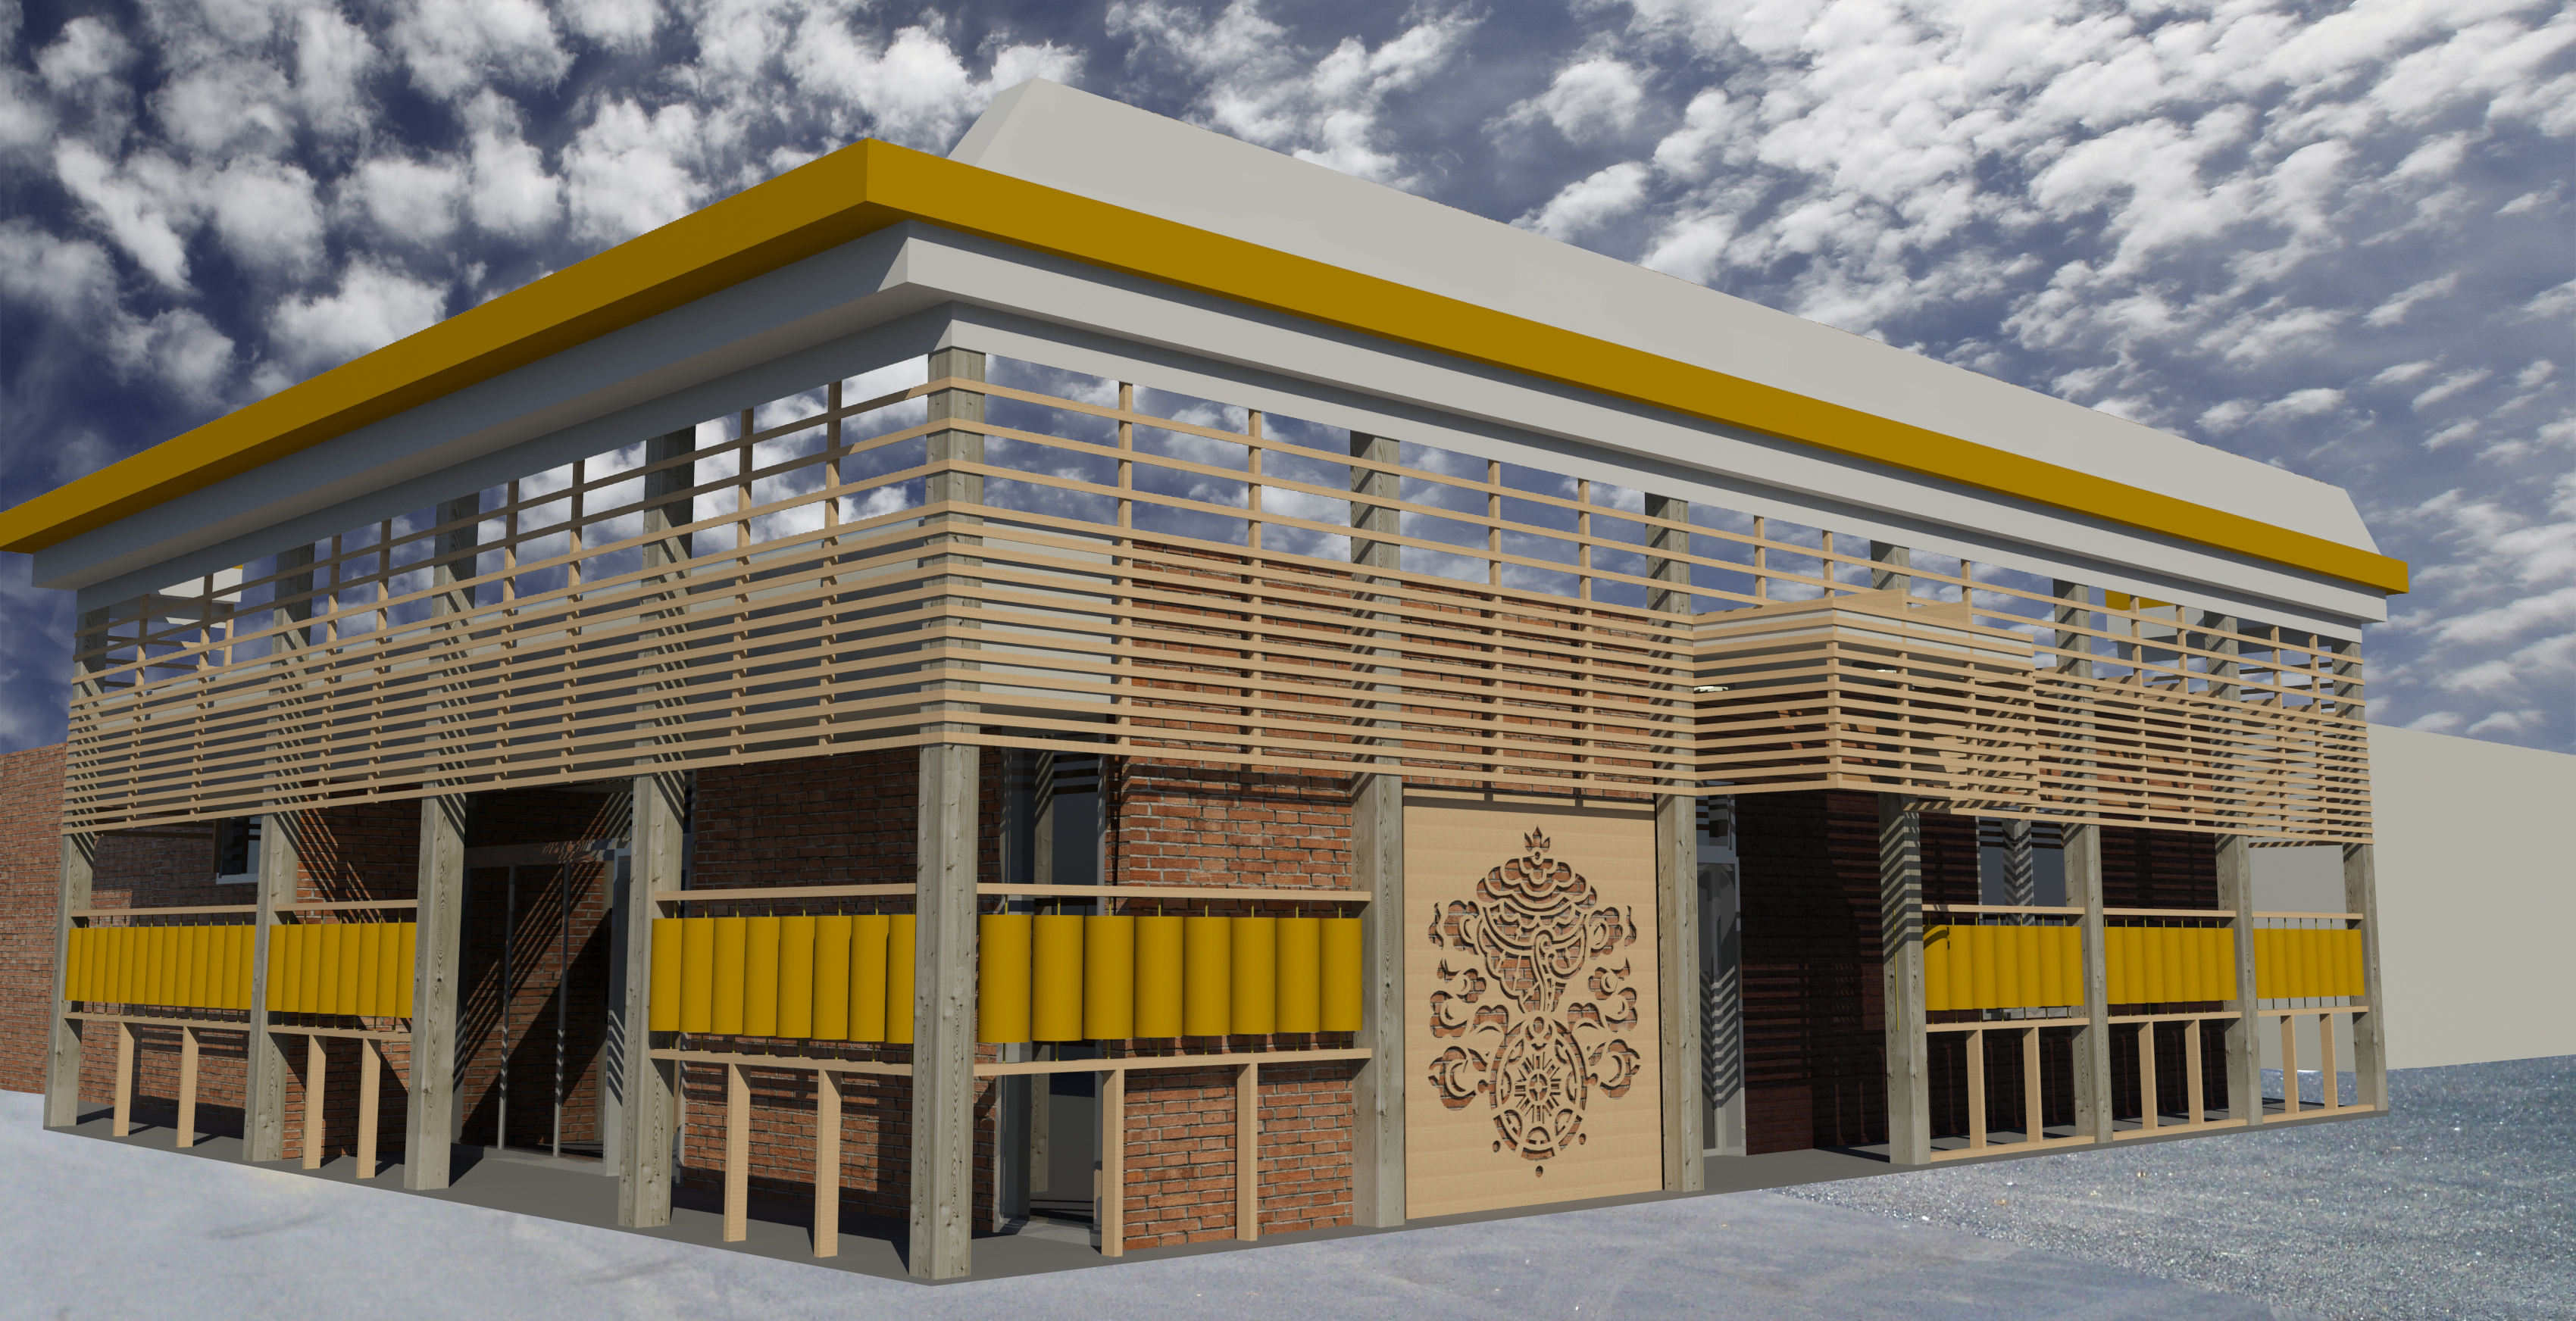 Tibetan Community Center Rendering